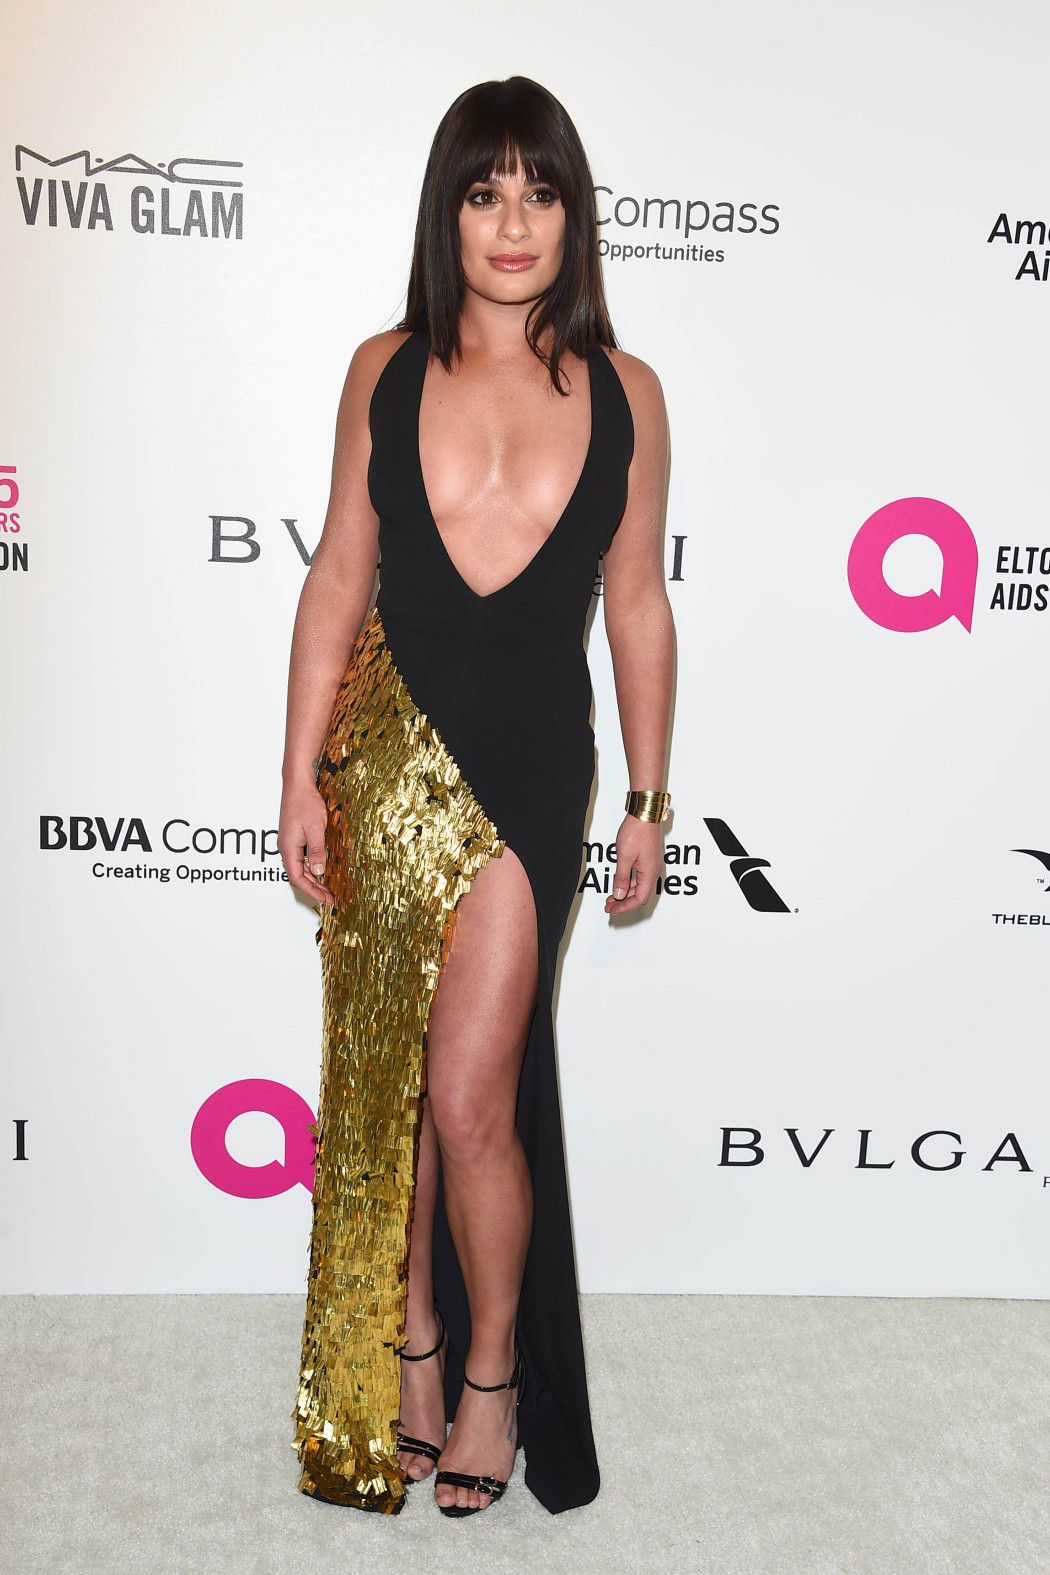 lea-michele-nip-slip-and-cleavage-at-elton-johns-aids-foundation-oscars-viewing-party-4572